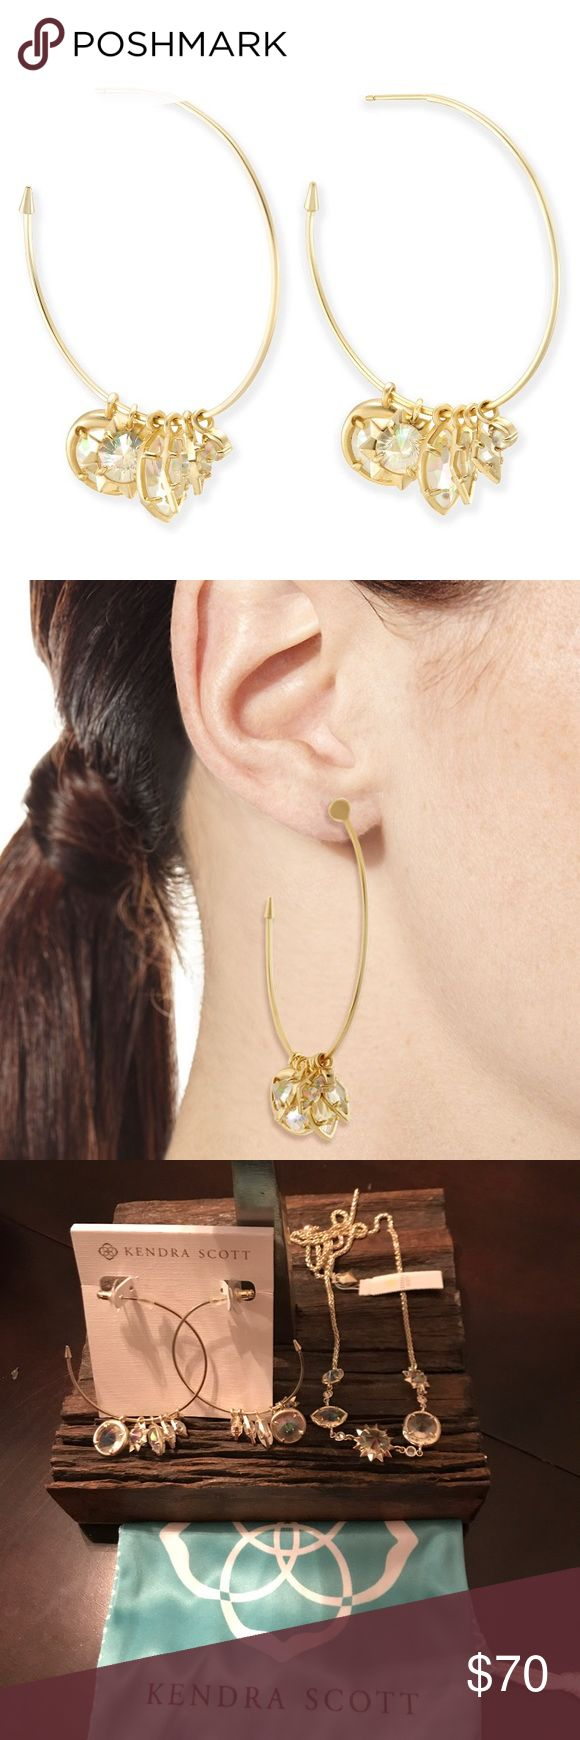 "Kendra Scott Alyssa Charm Hoop Earrings in Gold!! A classic hoop with infinite ways to wear, we love the brass Alyssa charm earrings for their versatility and their playful appeal. • Size: 1.75"" diameter, .87"" charm length • Quantity: 6 charms • Material: iridescent clear glass* Includes Kendra Scott Slip Bag Kendra Scott Jewelry Earrings"